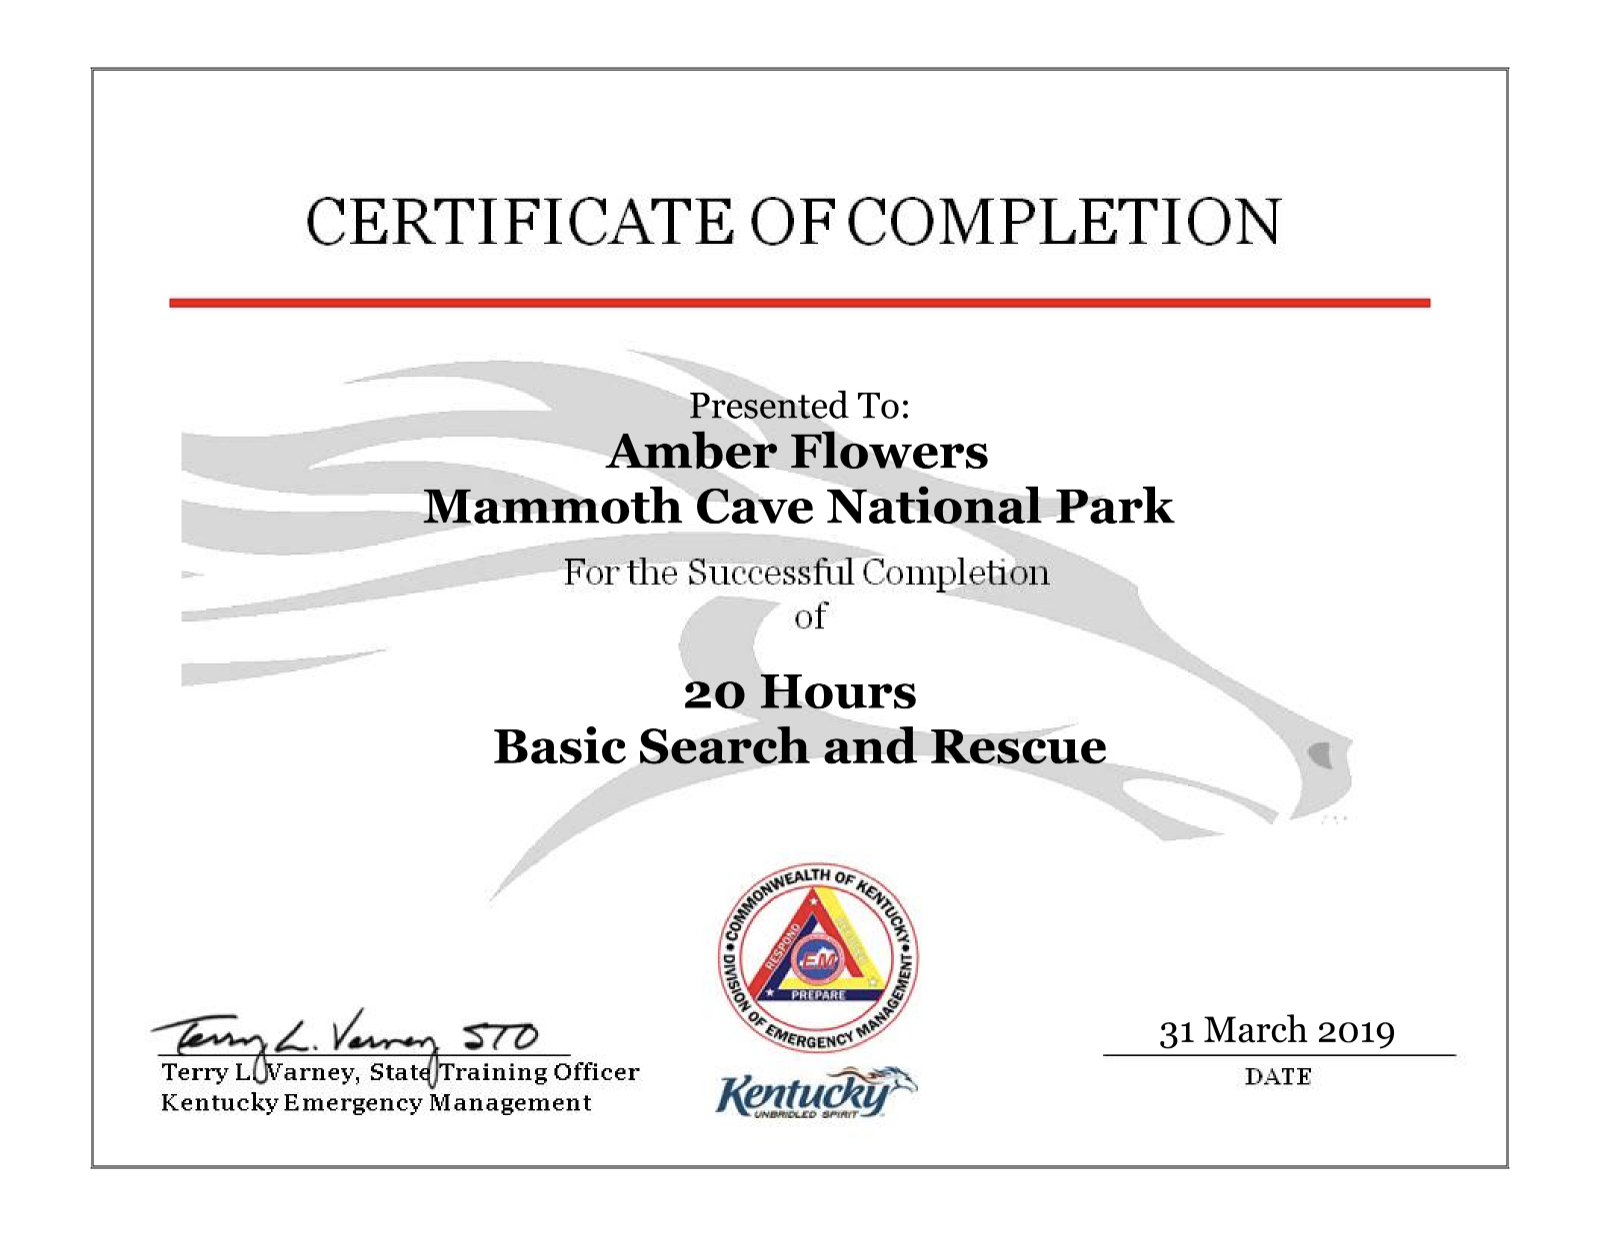 BSAR - Basic Search & Rescue , Kentucky Emergency Management March 29th-31st 2019 (20hrs)